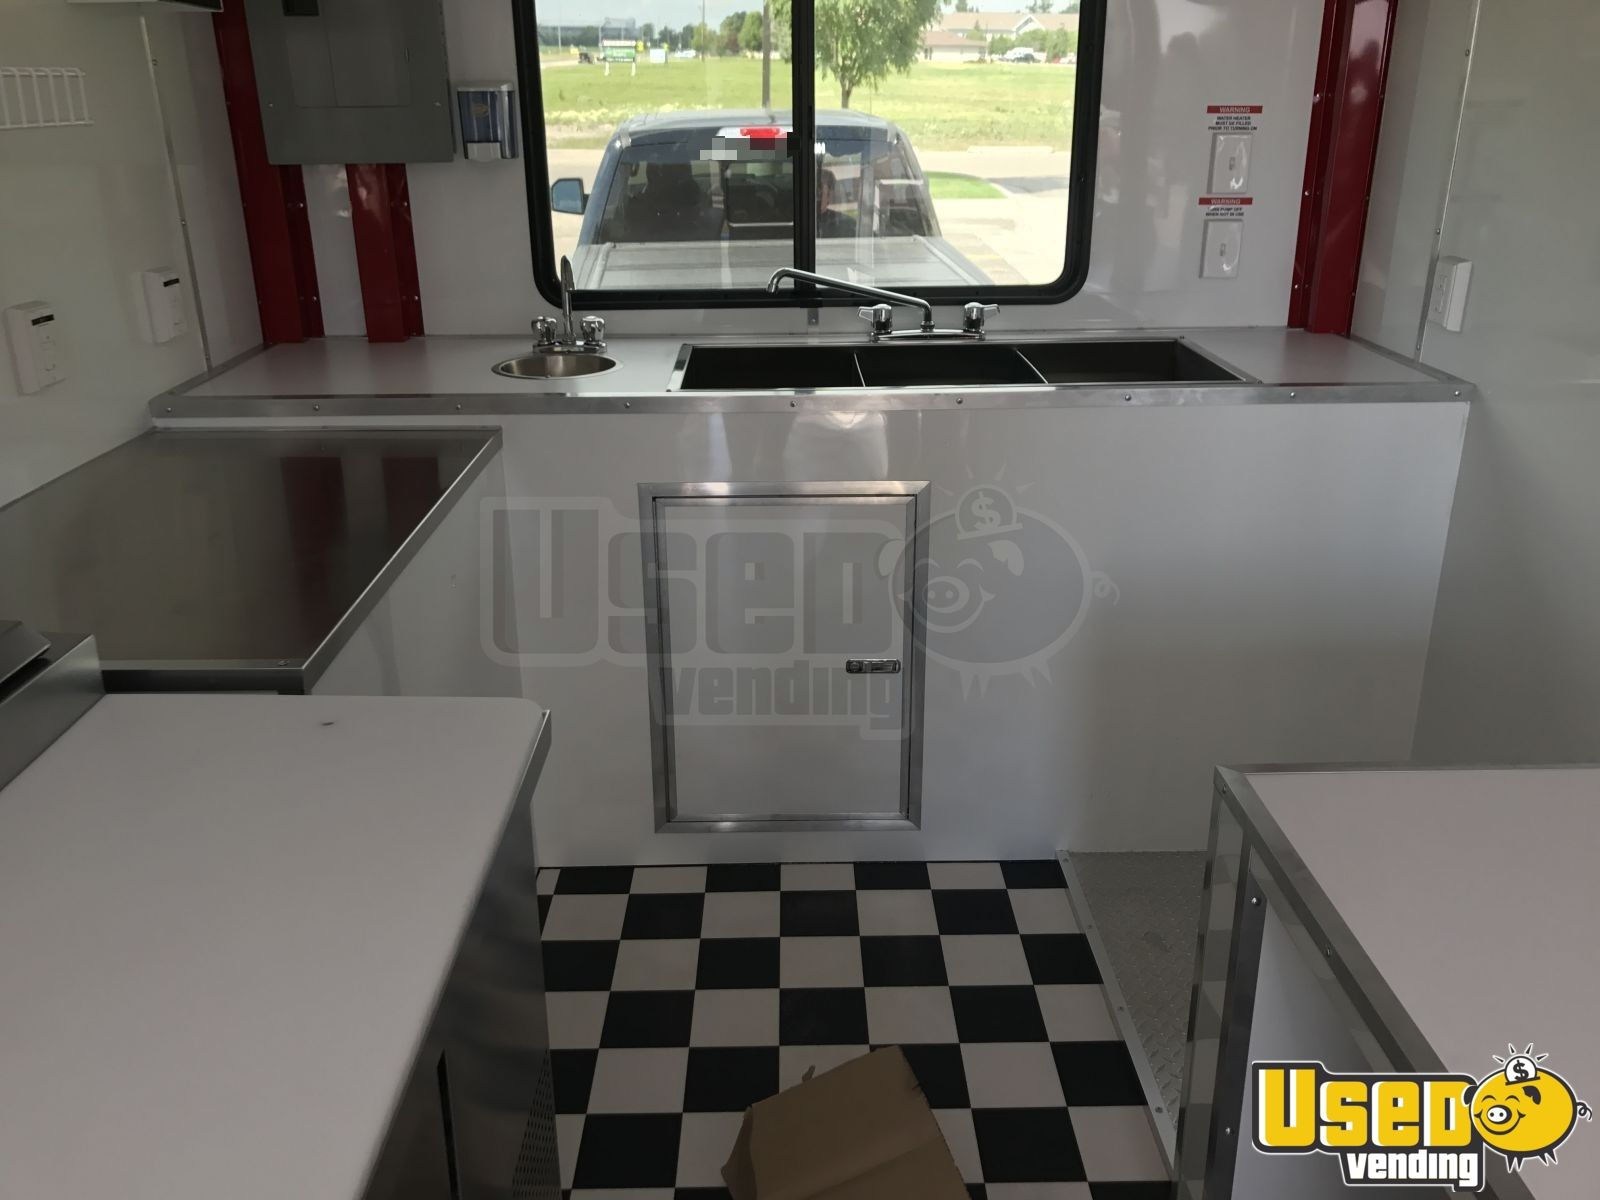 2017 Pizza Trailer Cabinets Vermont for Sale - 5